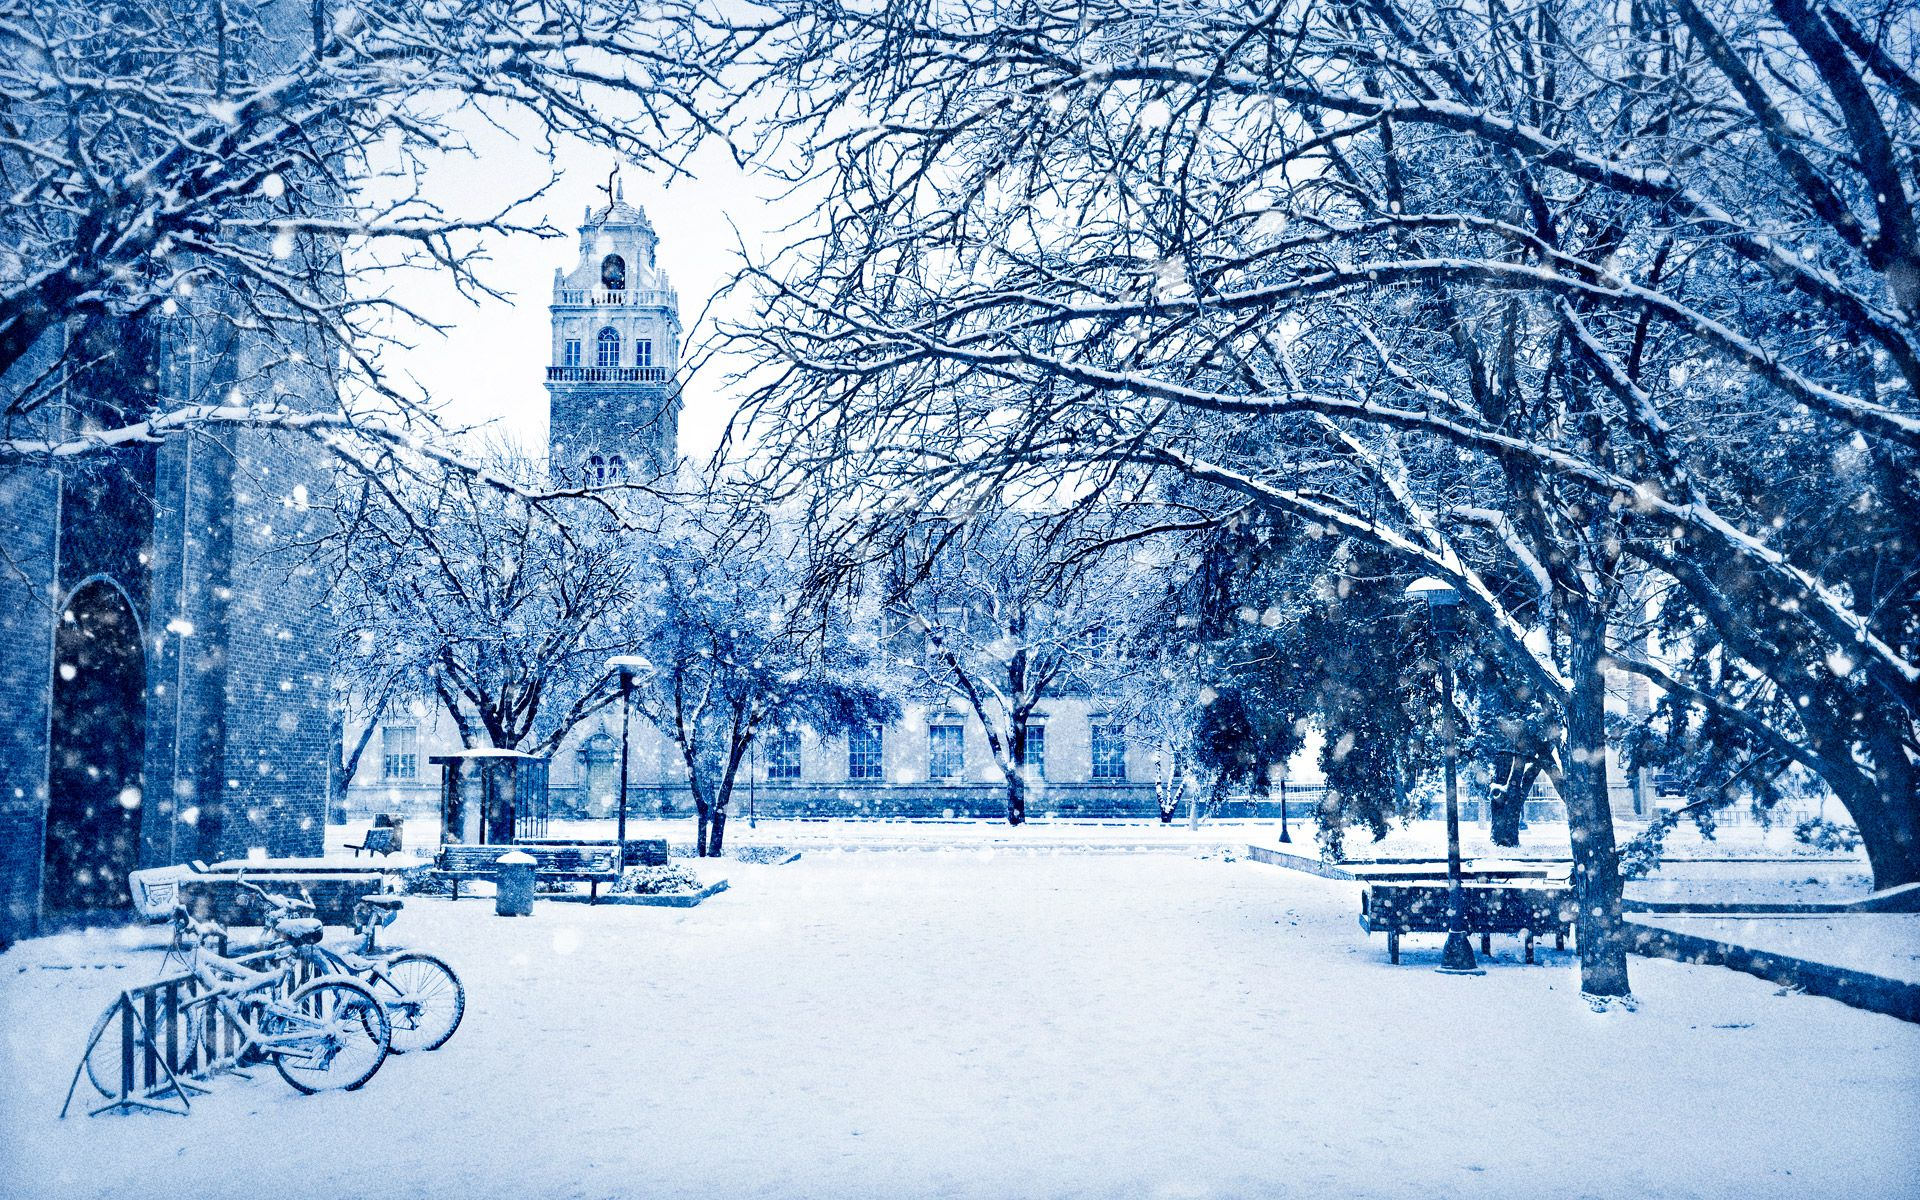 Texas Tech Administration building in winter | My Texas | Pinterest ...